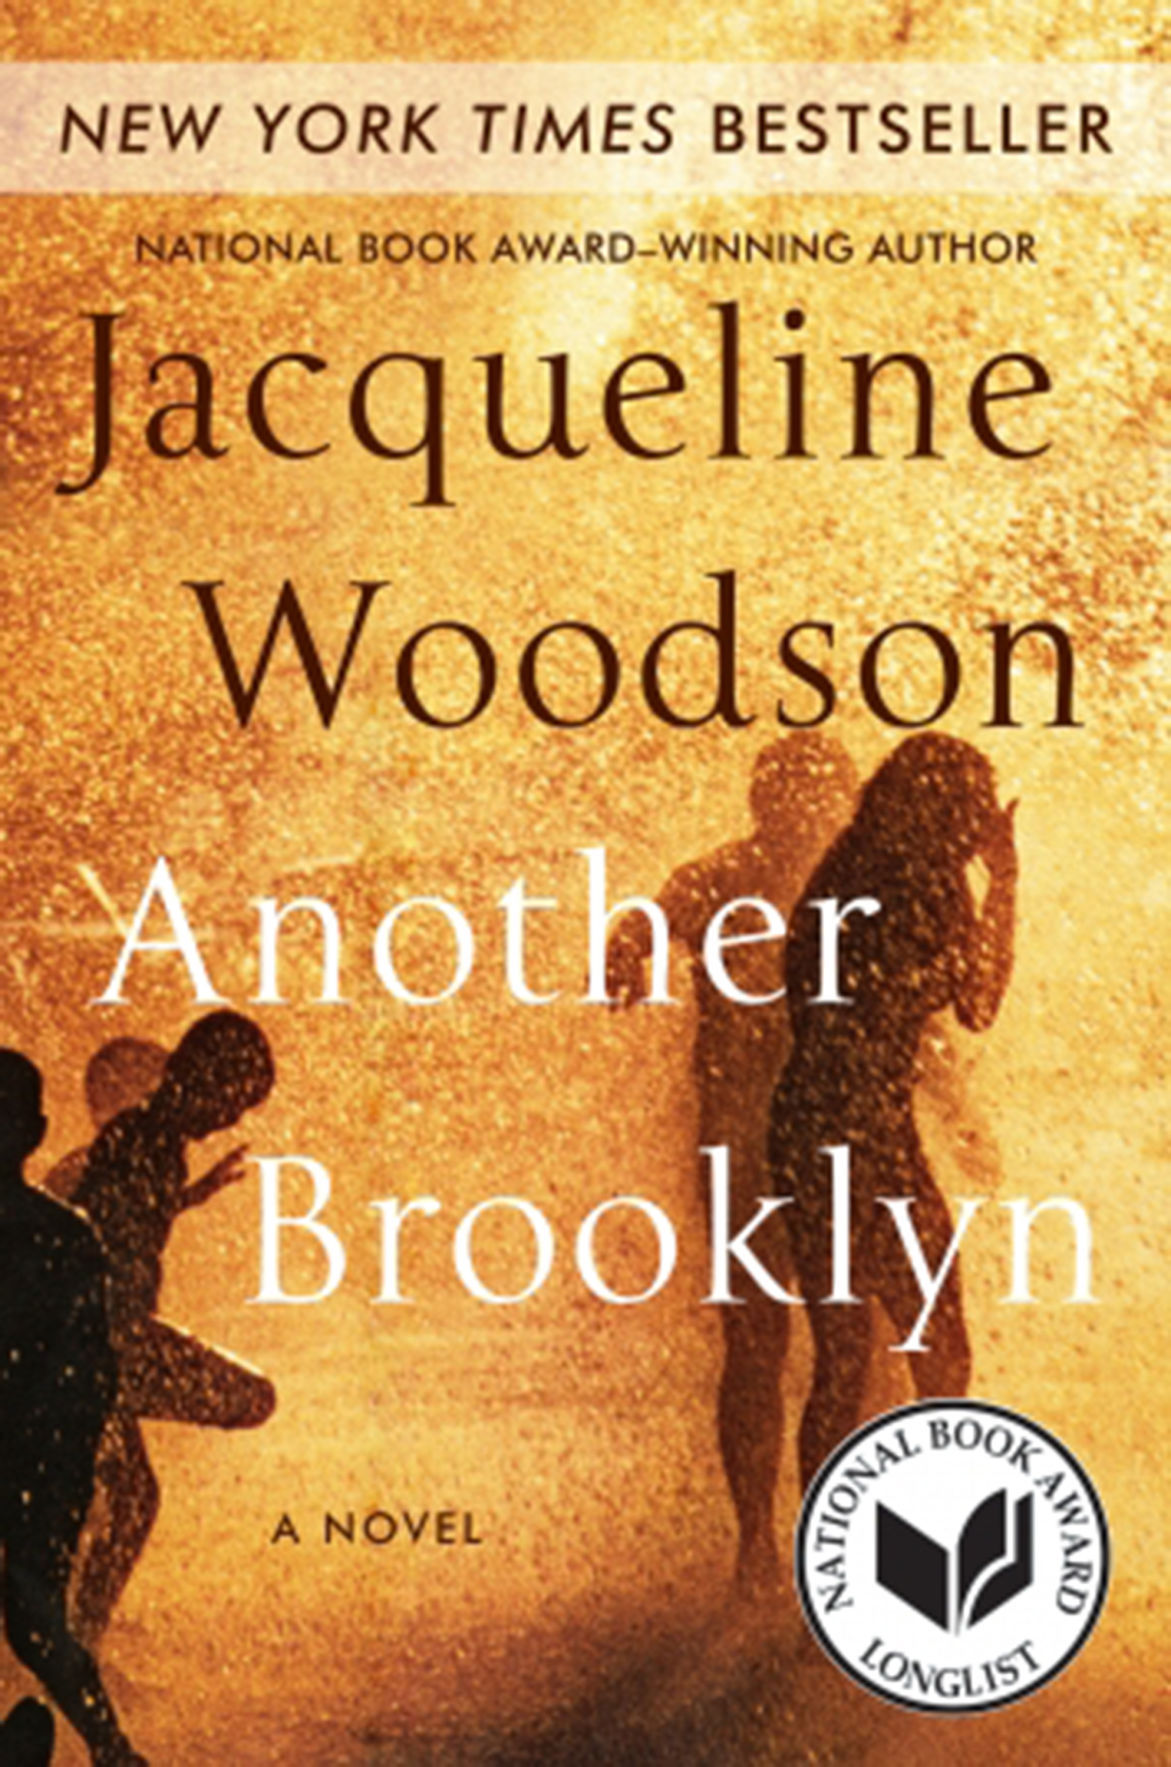 BOOKS BOOK-WOODSON-ANOTHERBROOKLYN MS